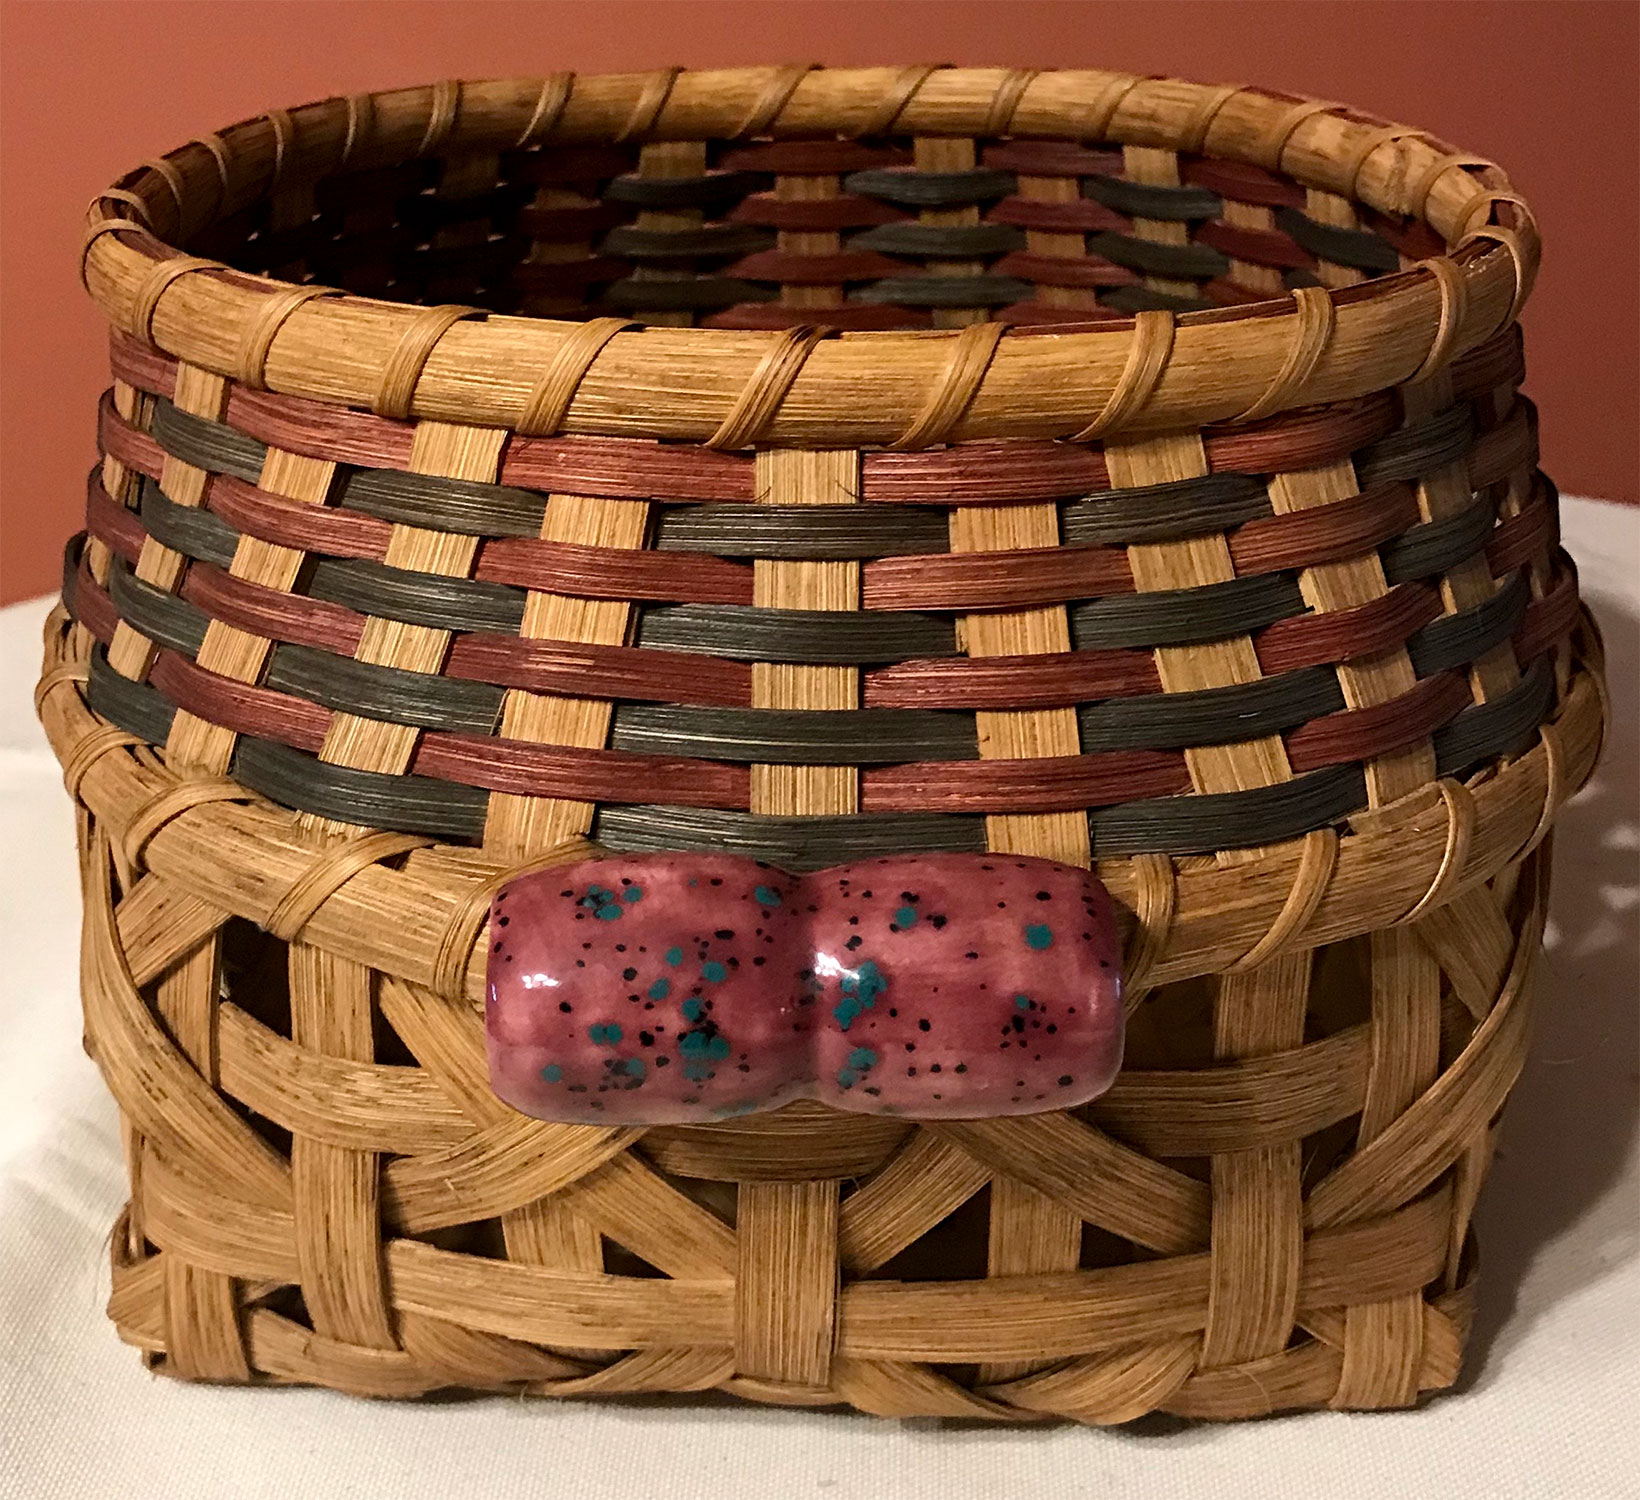 How to Create Intricate Baskets with Ceramic Handles